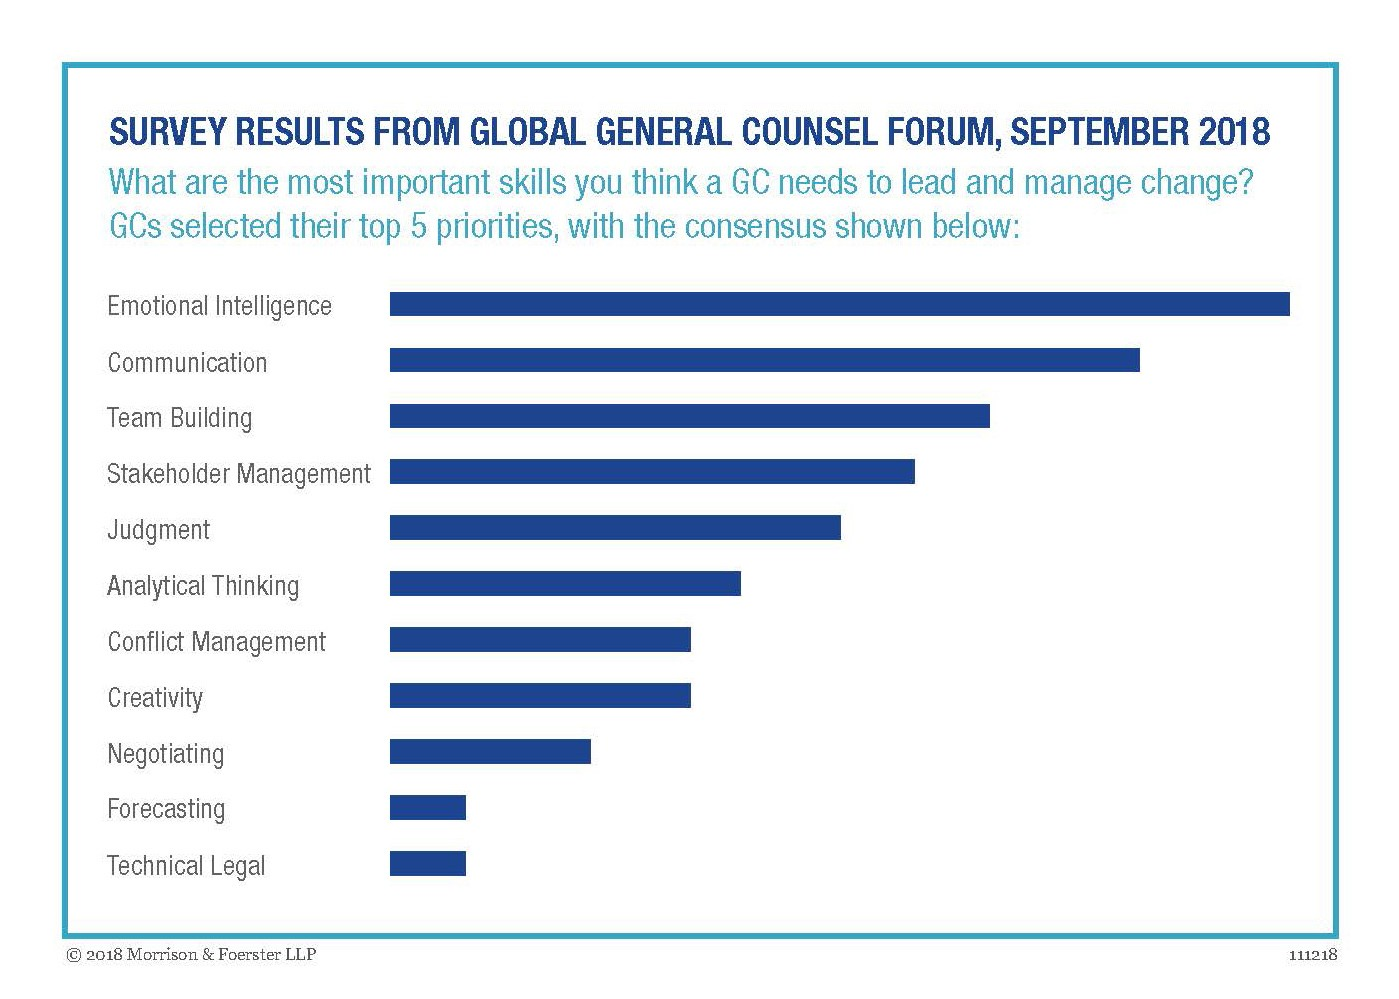 Survey Results from Global General Counsel Forum, September 2018